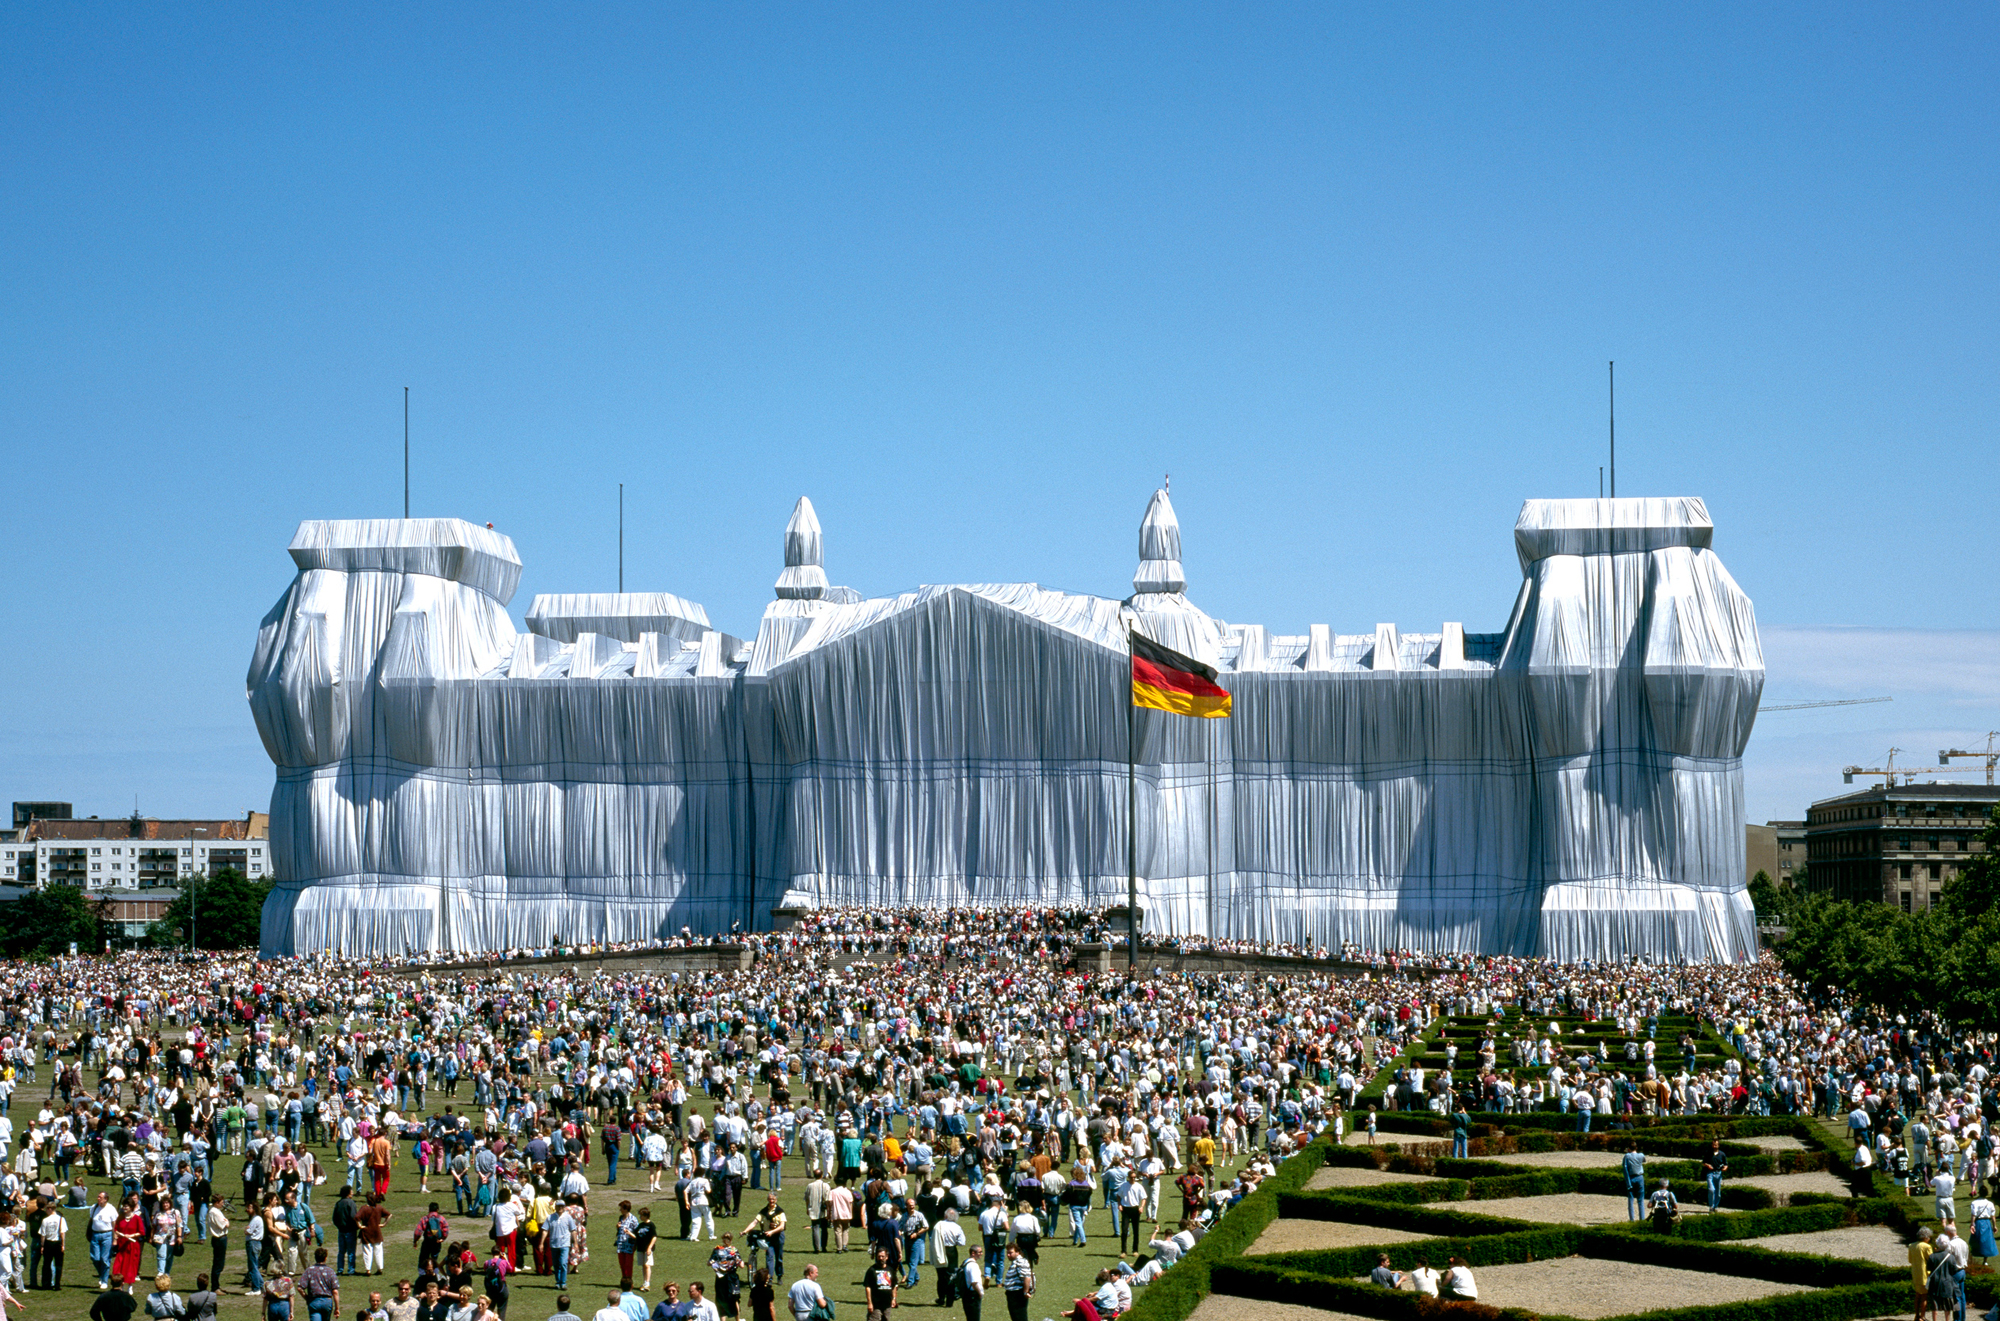 Arte e Arquitetura: Christo and Jeanne-Claude